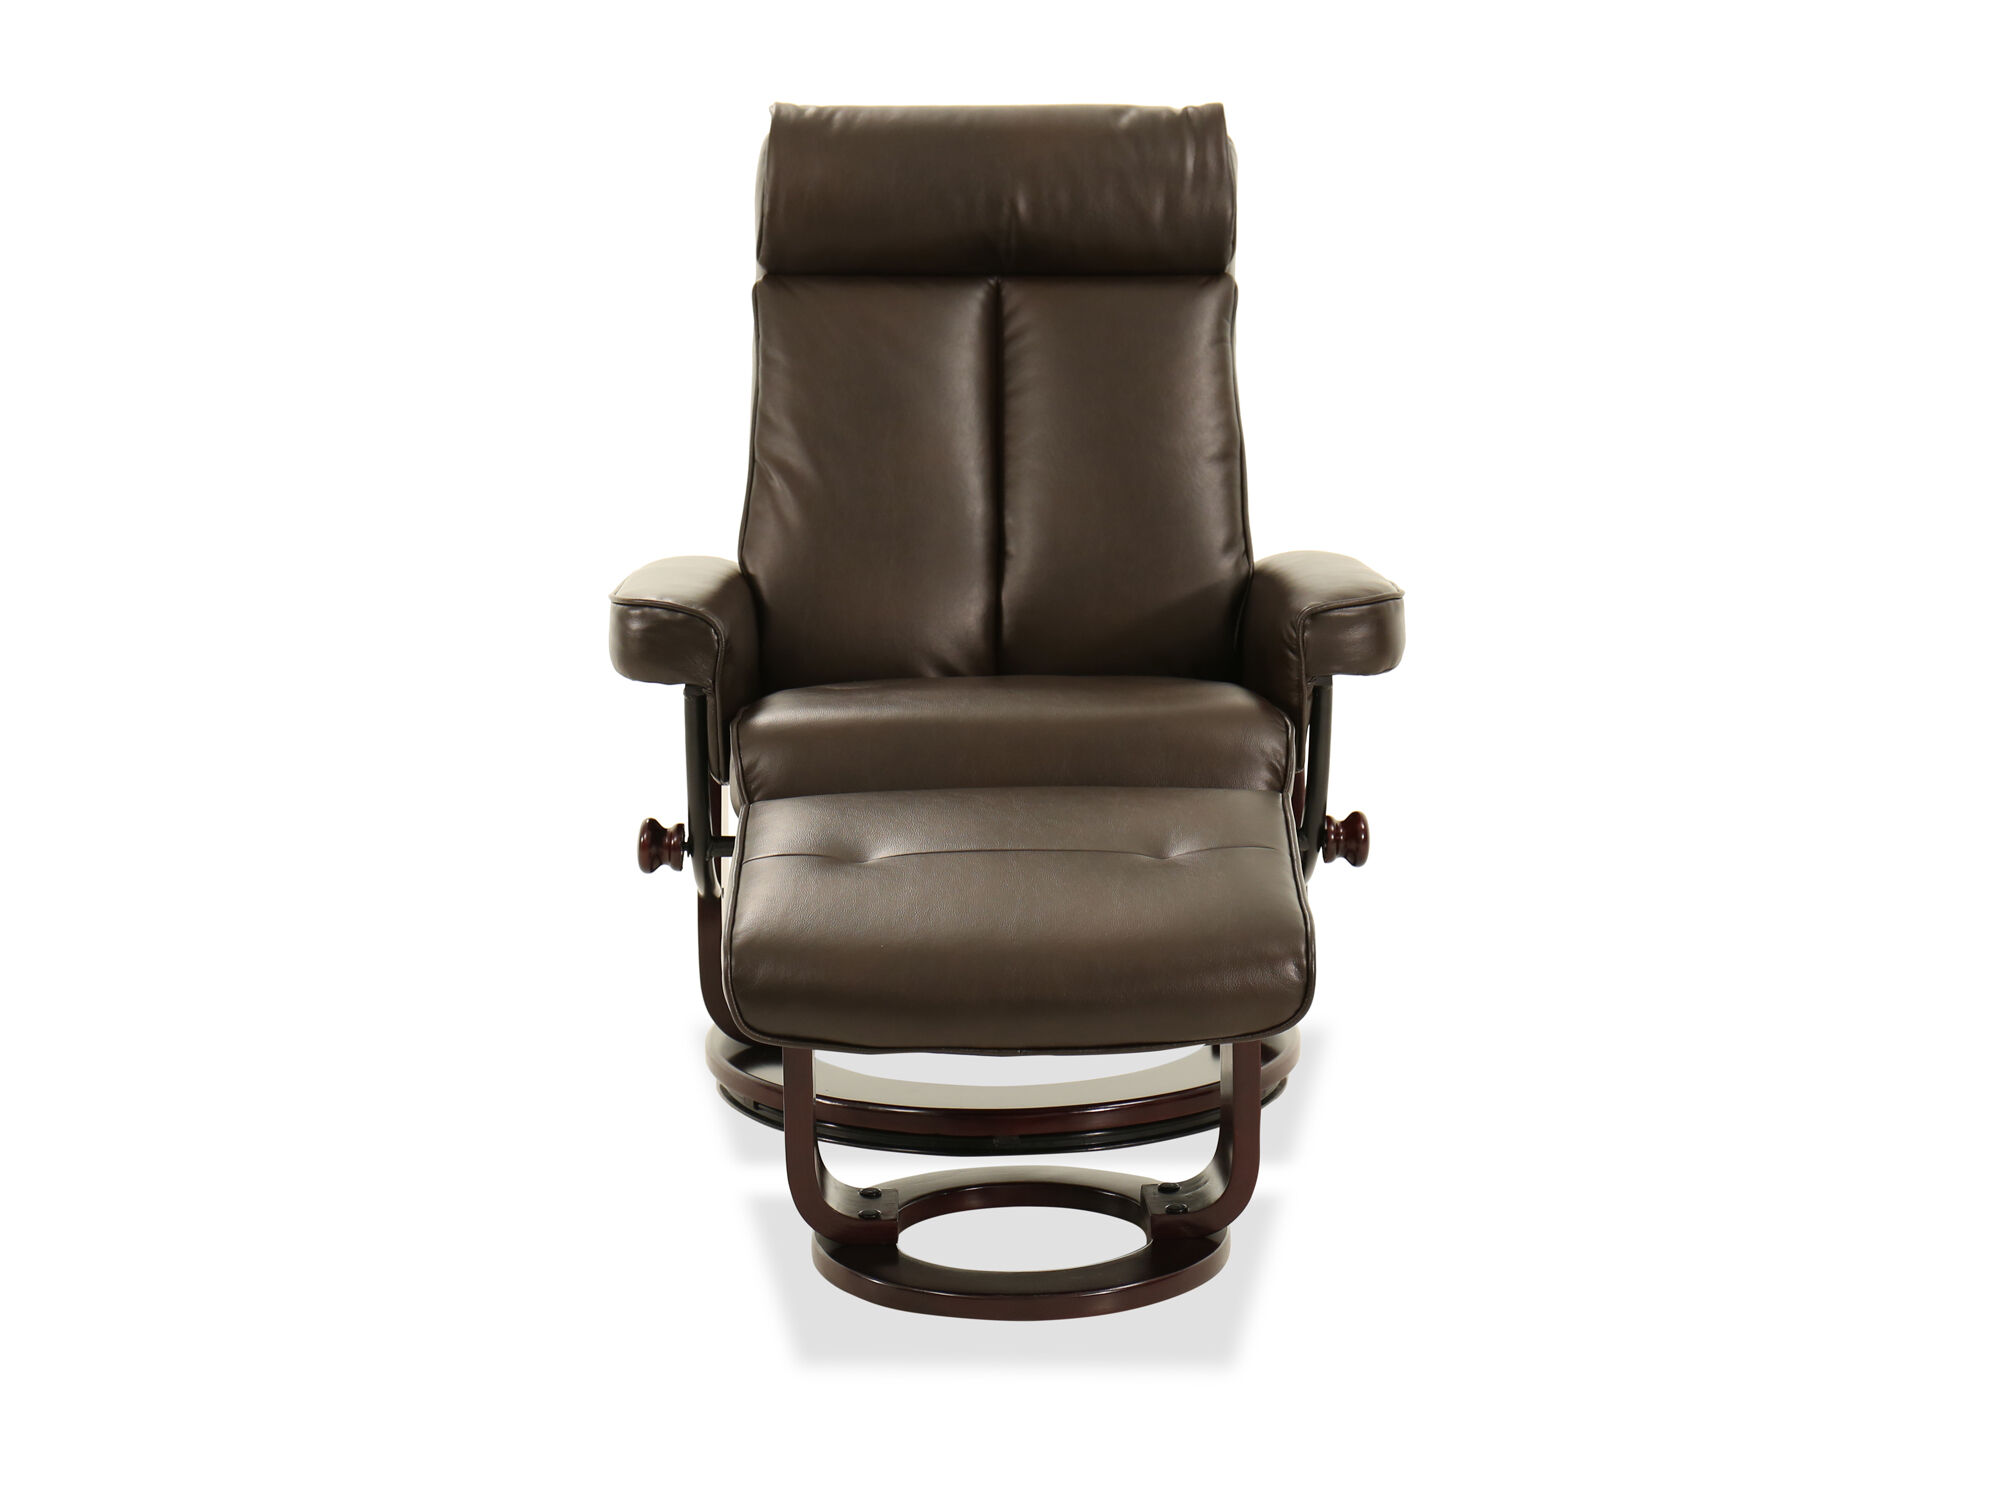 reclining chair with ottoman leather makeup recliner and in brown mathis brothers furniture